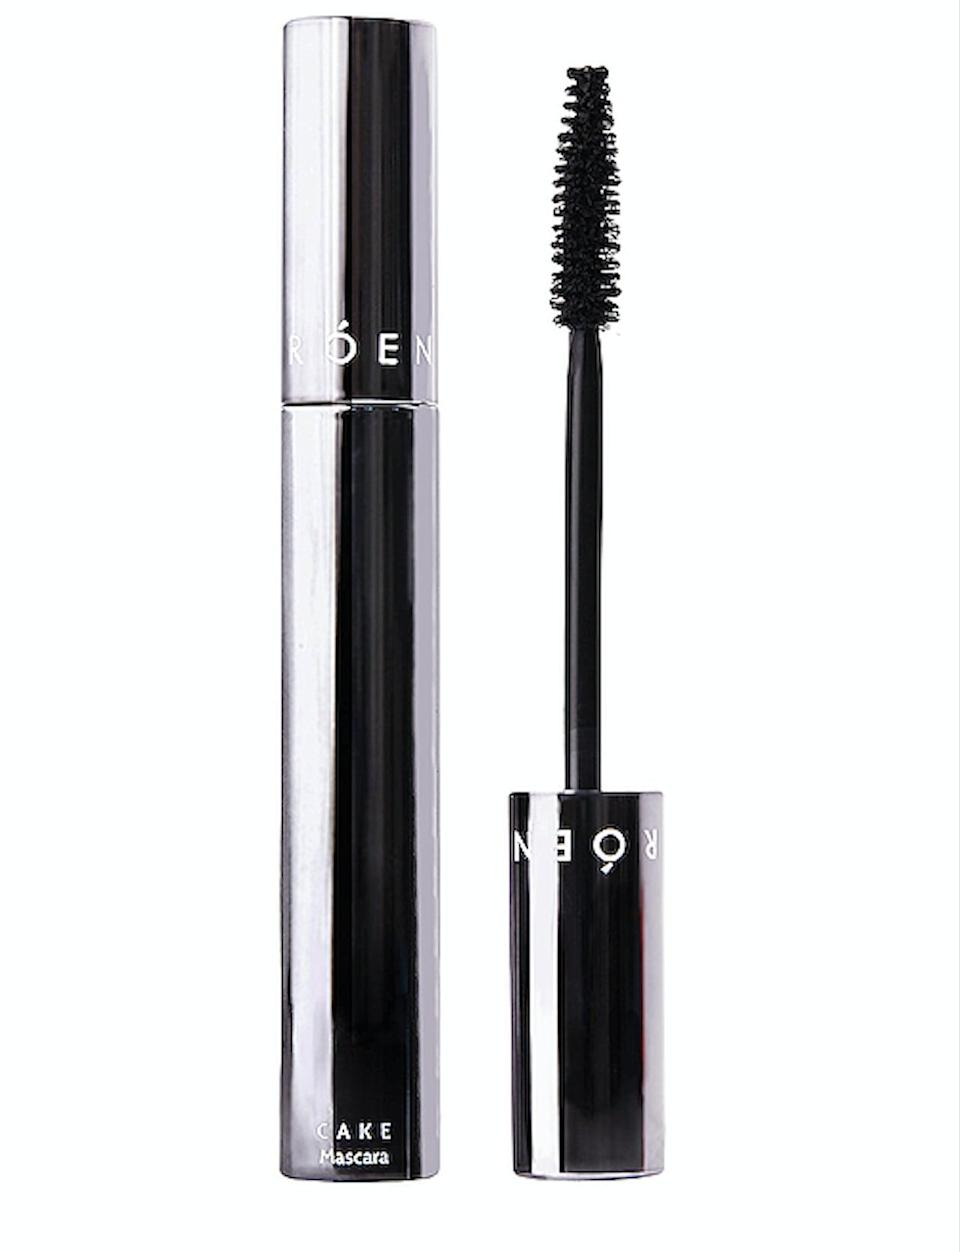 <p>Need volume and definition for your lashes without the clump? Look no further the <span>Roen Beauty CAKE Mascara</span> ($28) has got your back with hydrating ingredients such as olive oil.</p>